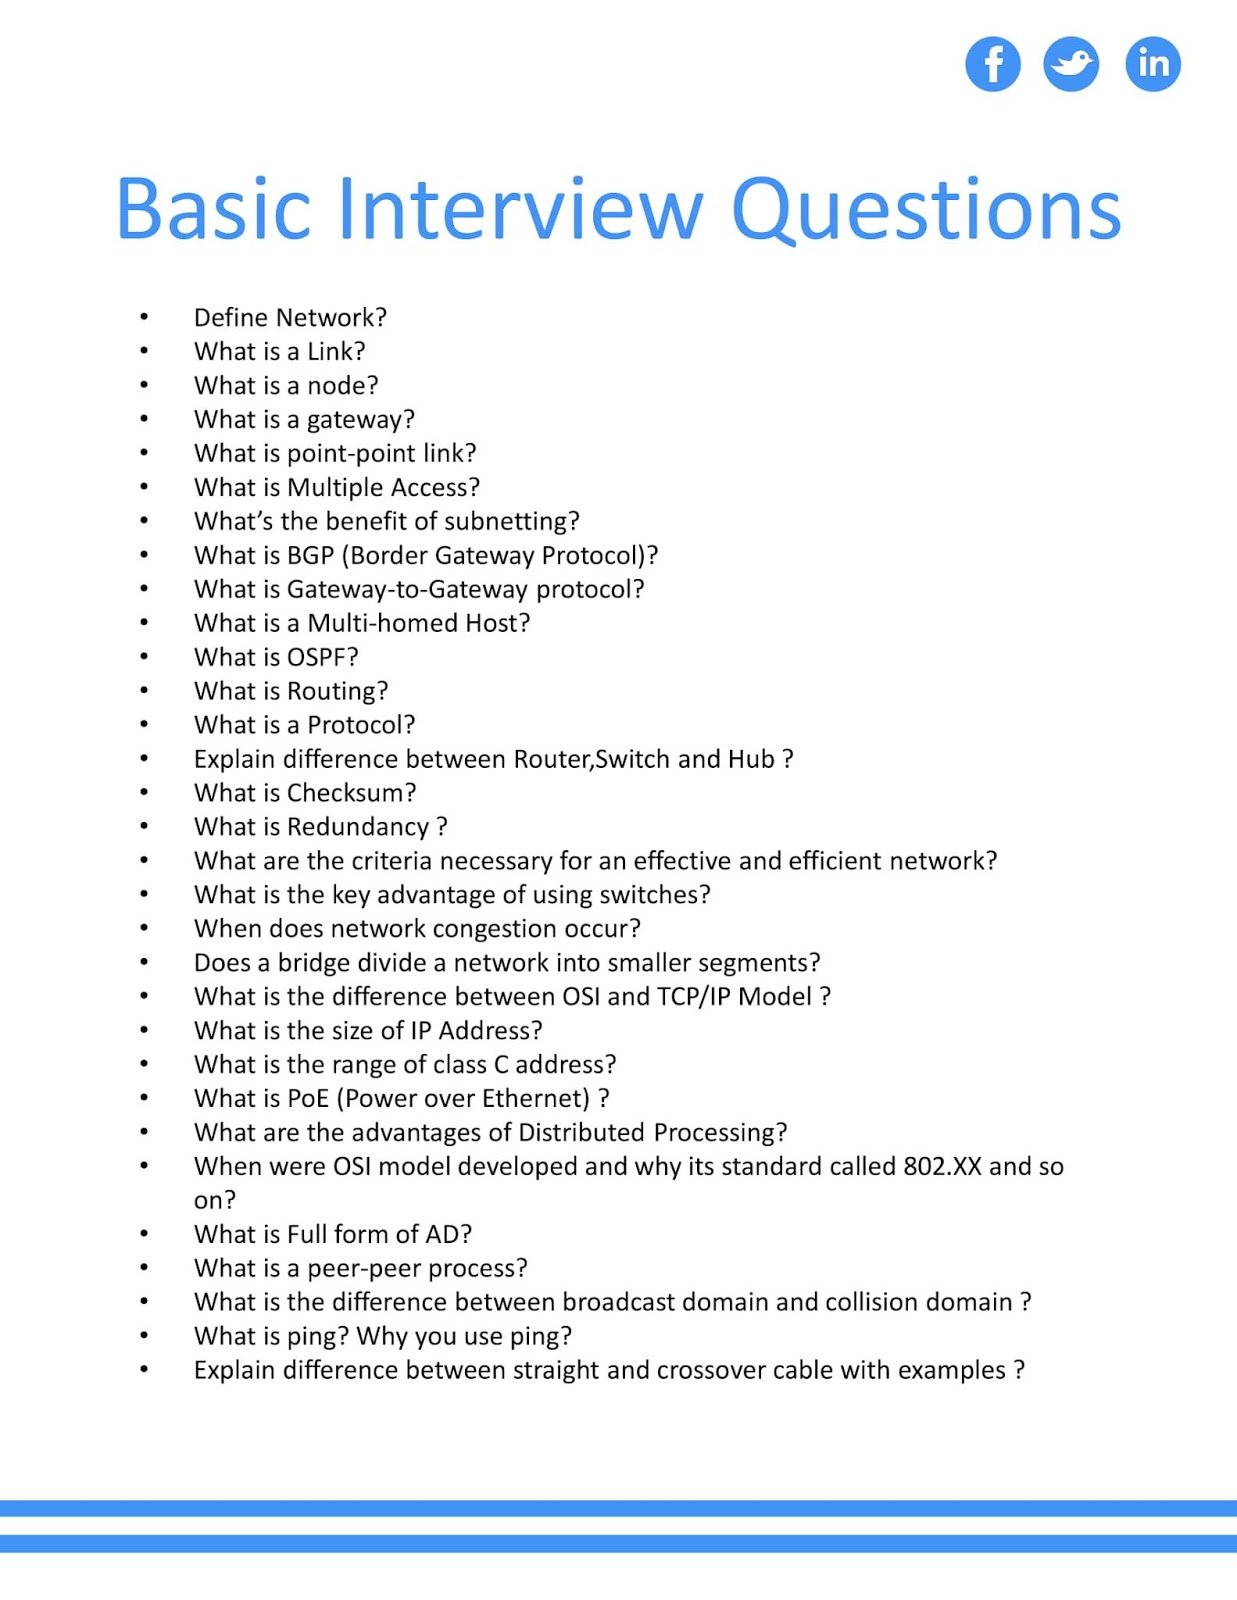 Basic Networking Interview Questions - CCNA Academy-a Free ...